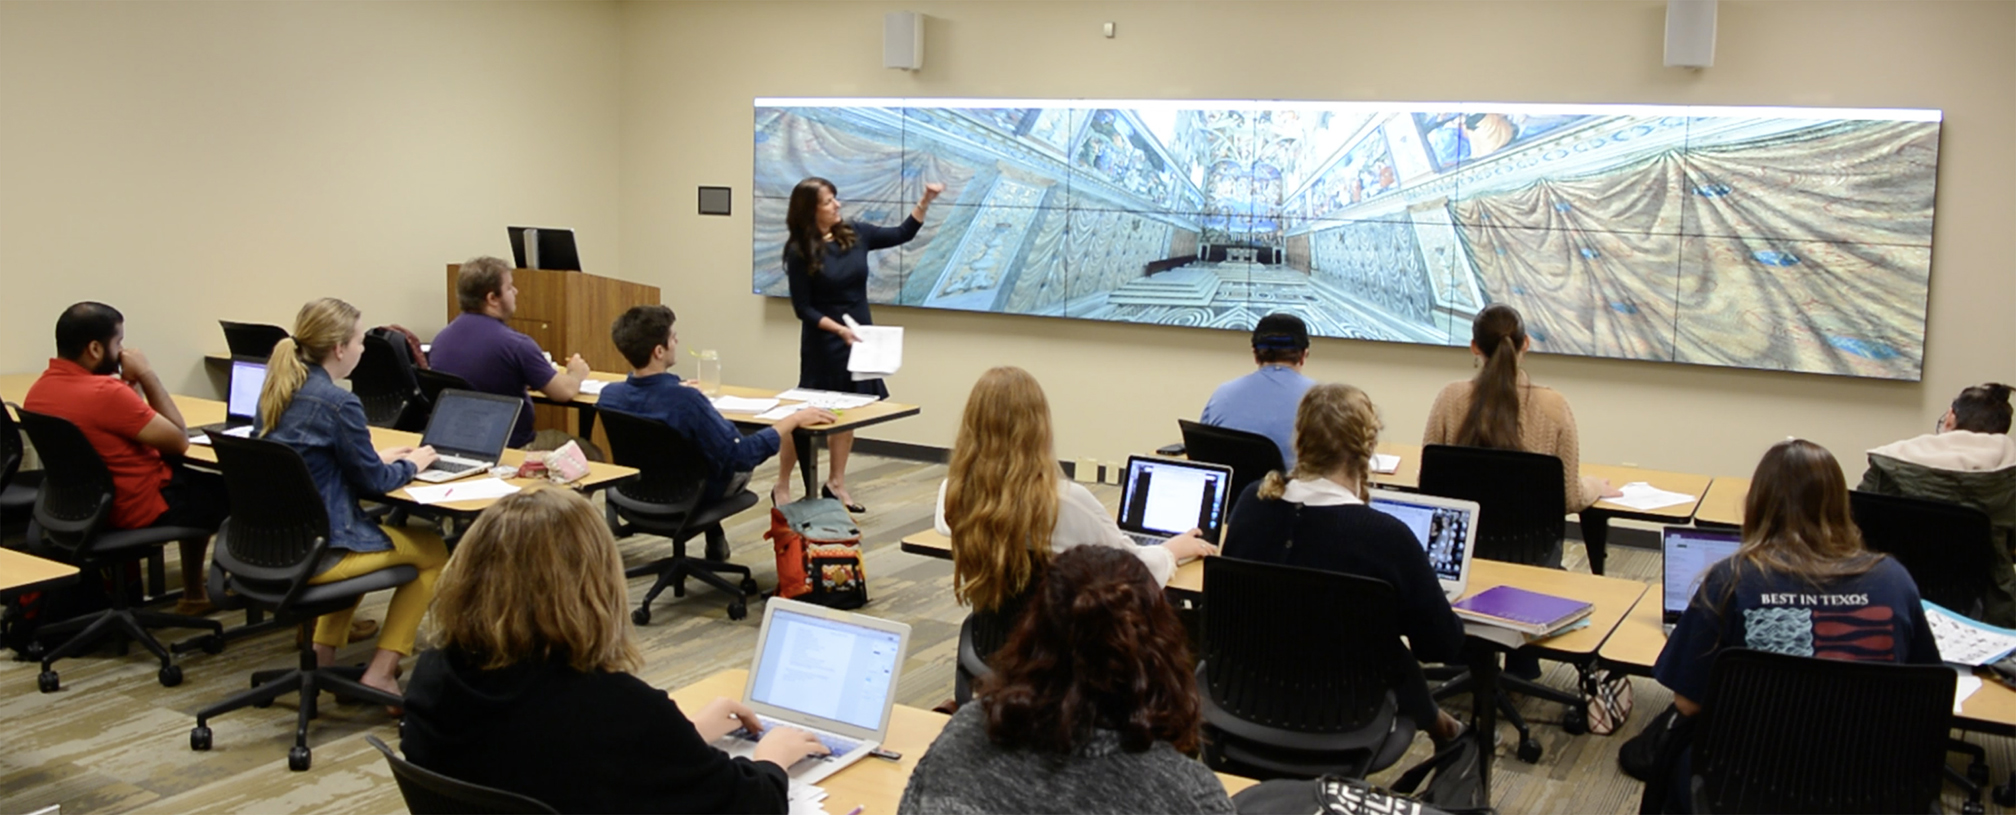 Dr. Heidi Hornik and Art History students in the 20 foot screen visualization lab.